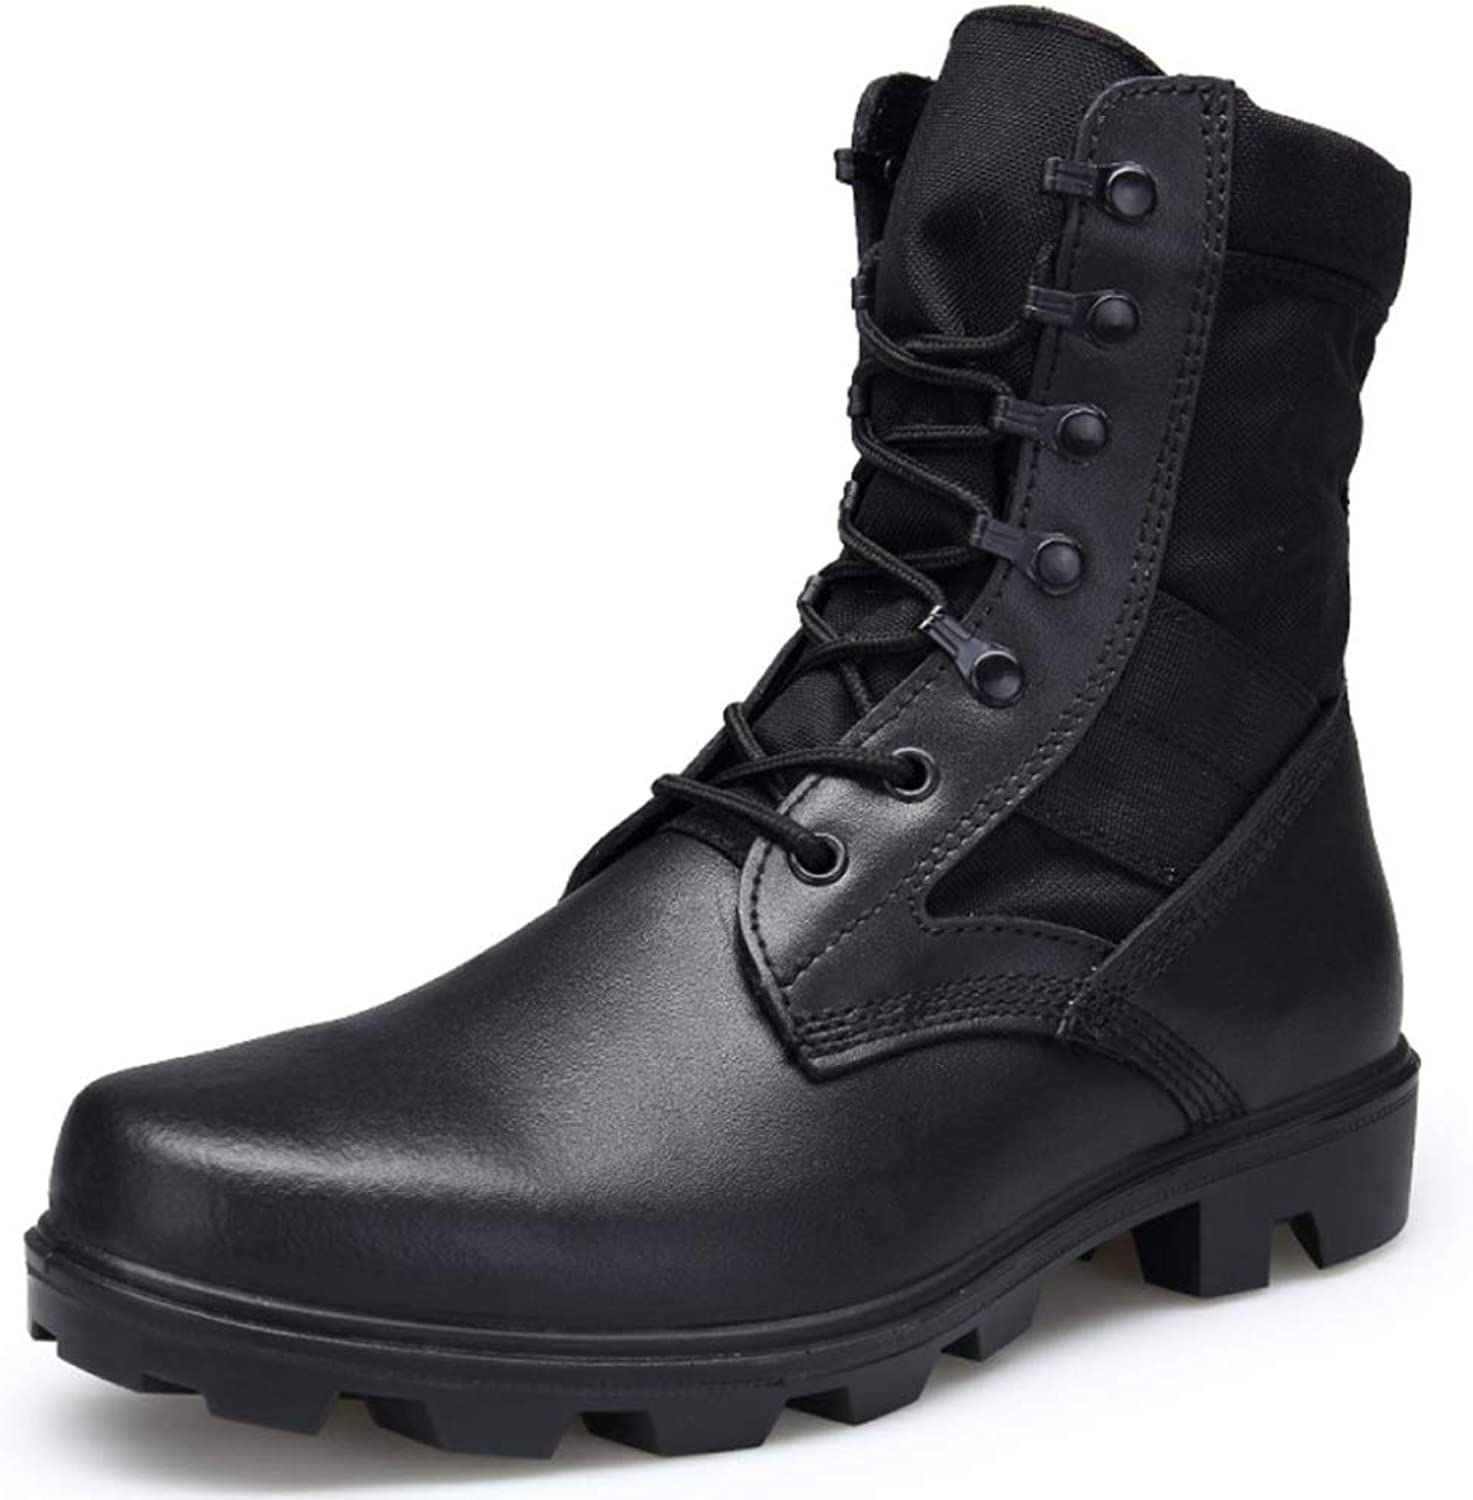 Tactical Boots Men's High-top Leather Waterproof Special Forces Military Boots Combat Boots Army Fan Desert Boots